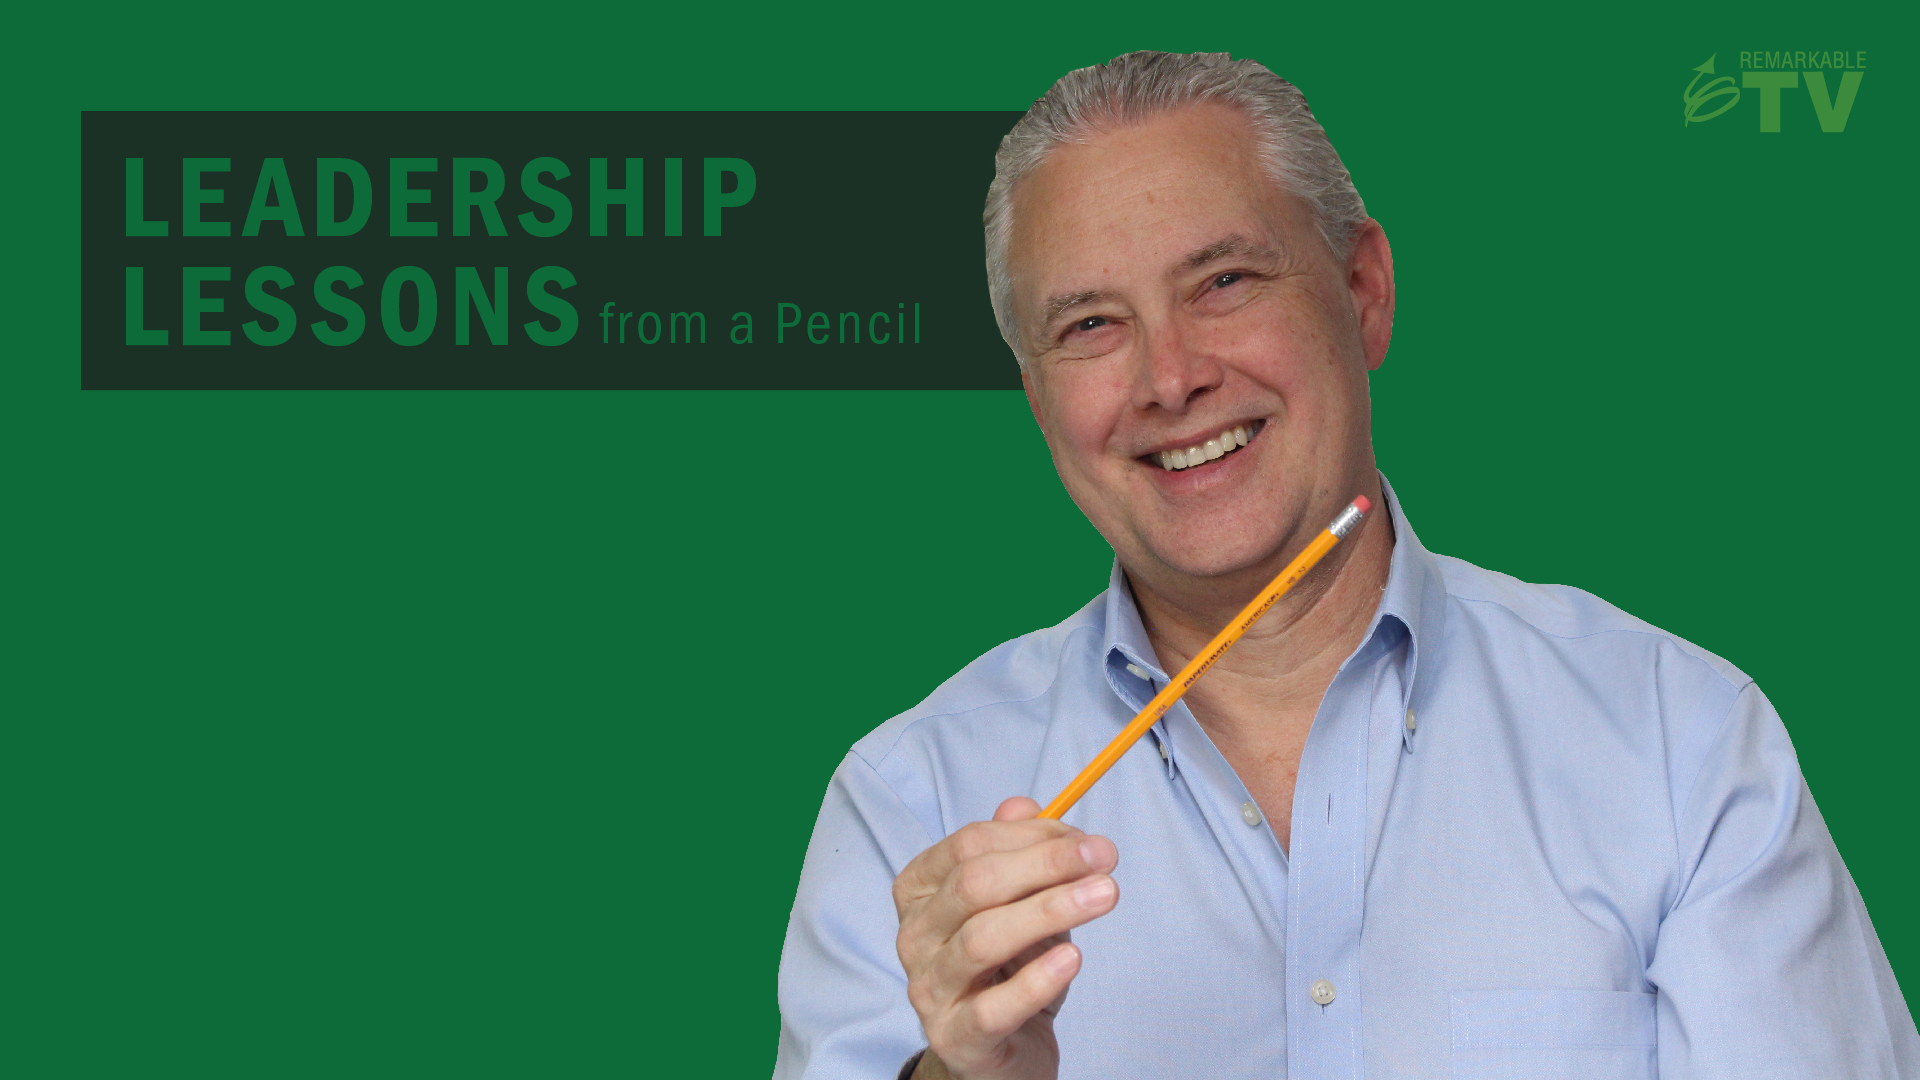 kevin eikenberry on leadership learning